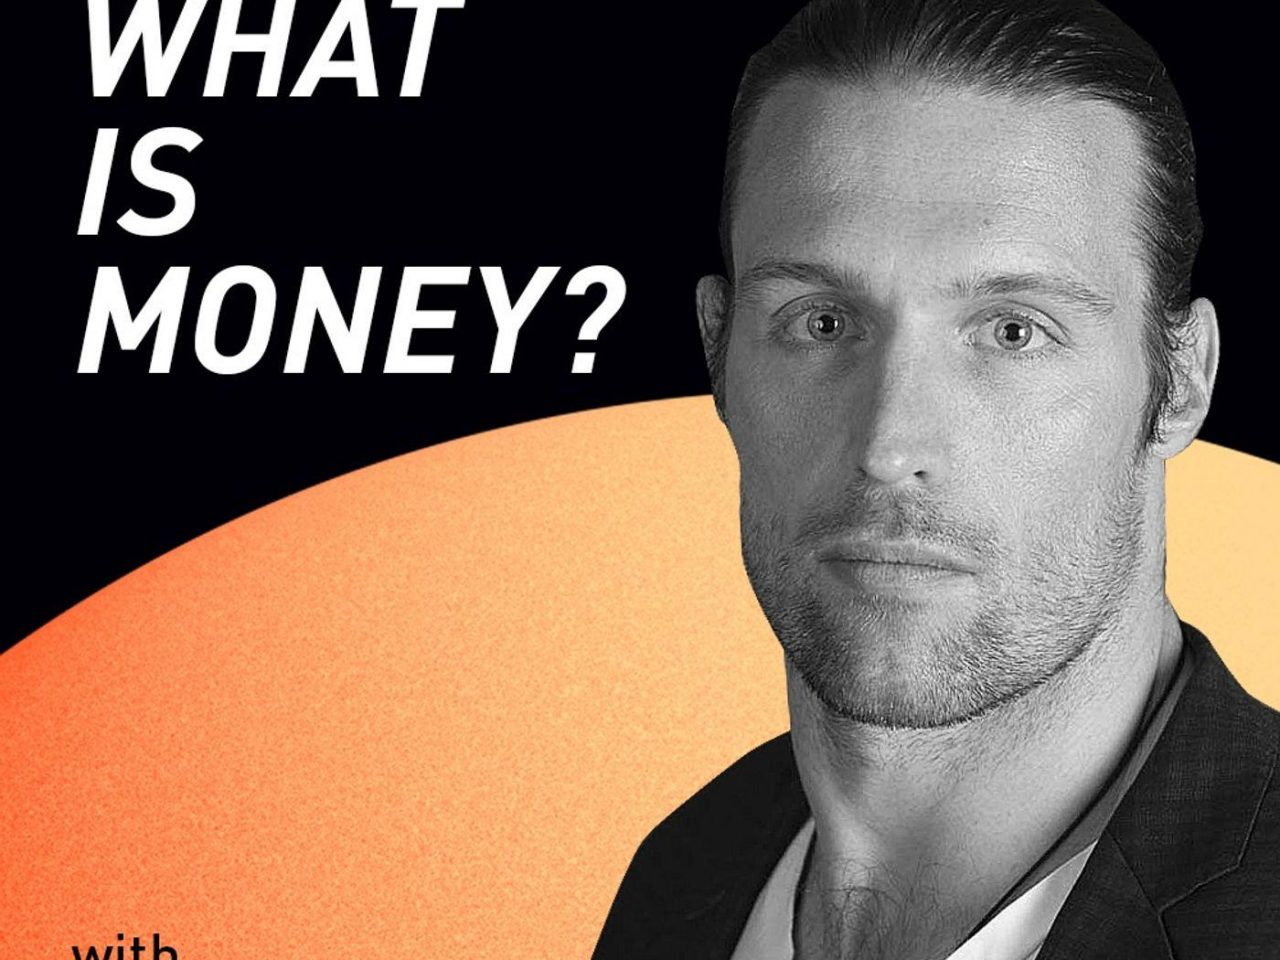 https://goodkarma.capital/wp-content/uploads/2021/06/The-What-Is-Money-Show-1280x960.jpg